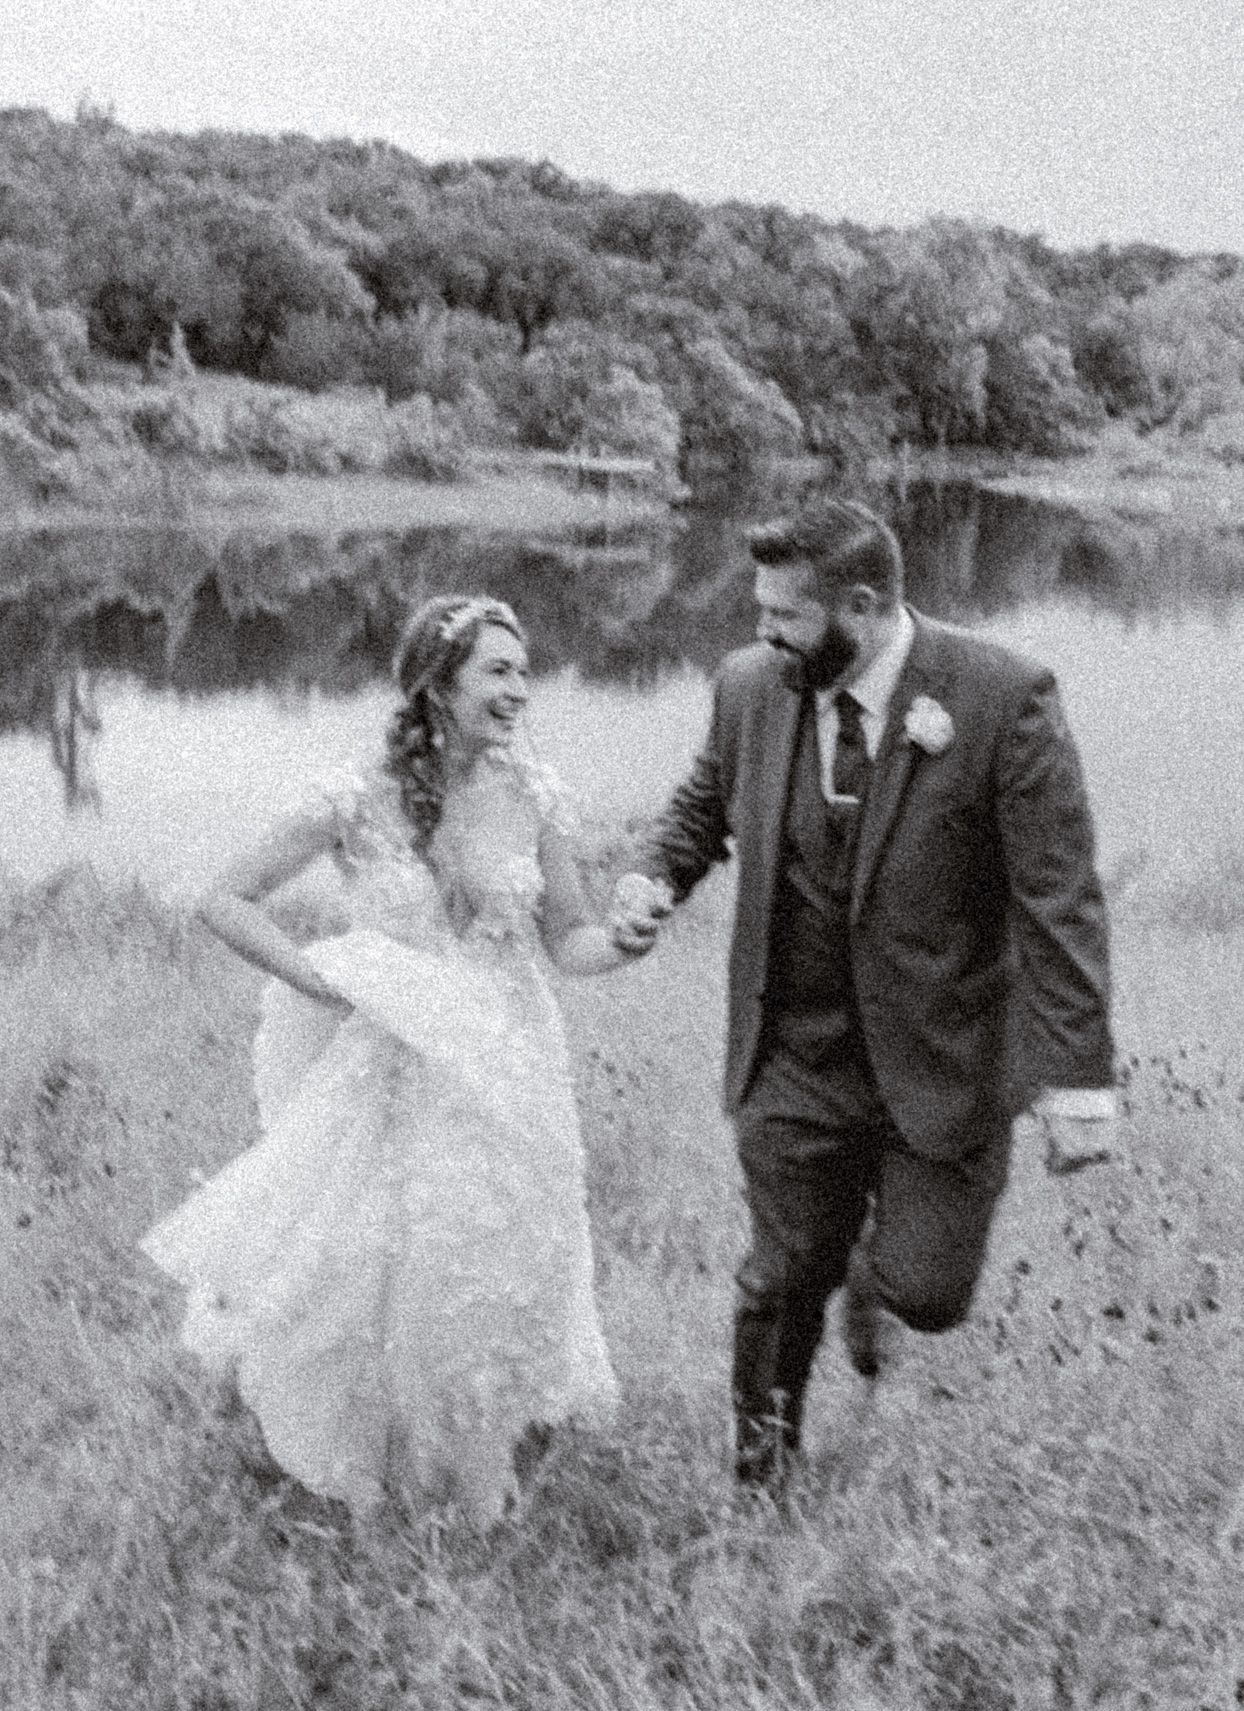 bride and groom smiling in black and white portrait shot